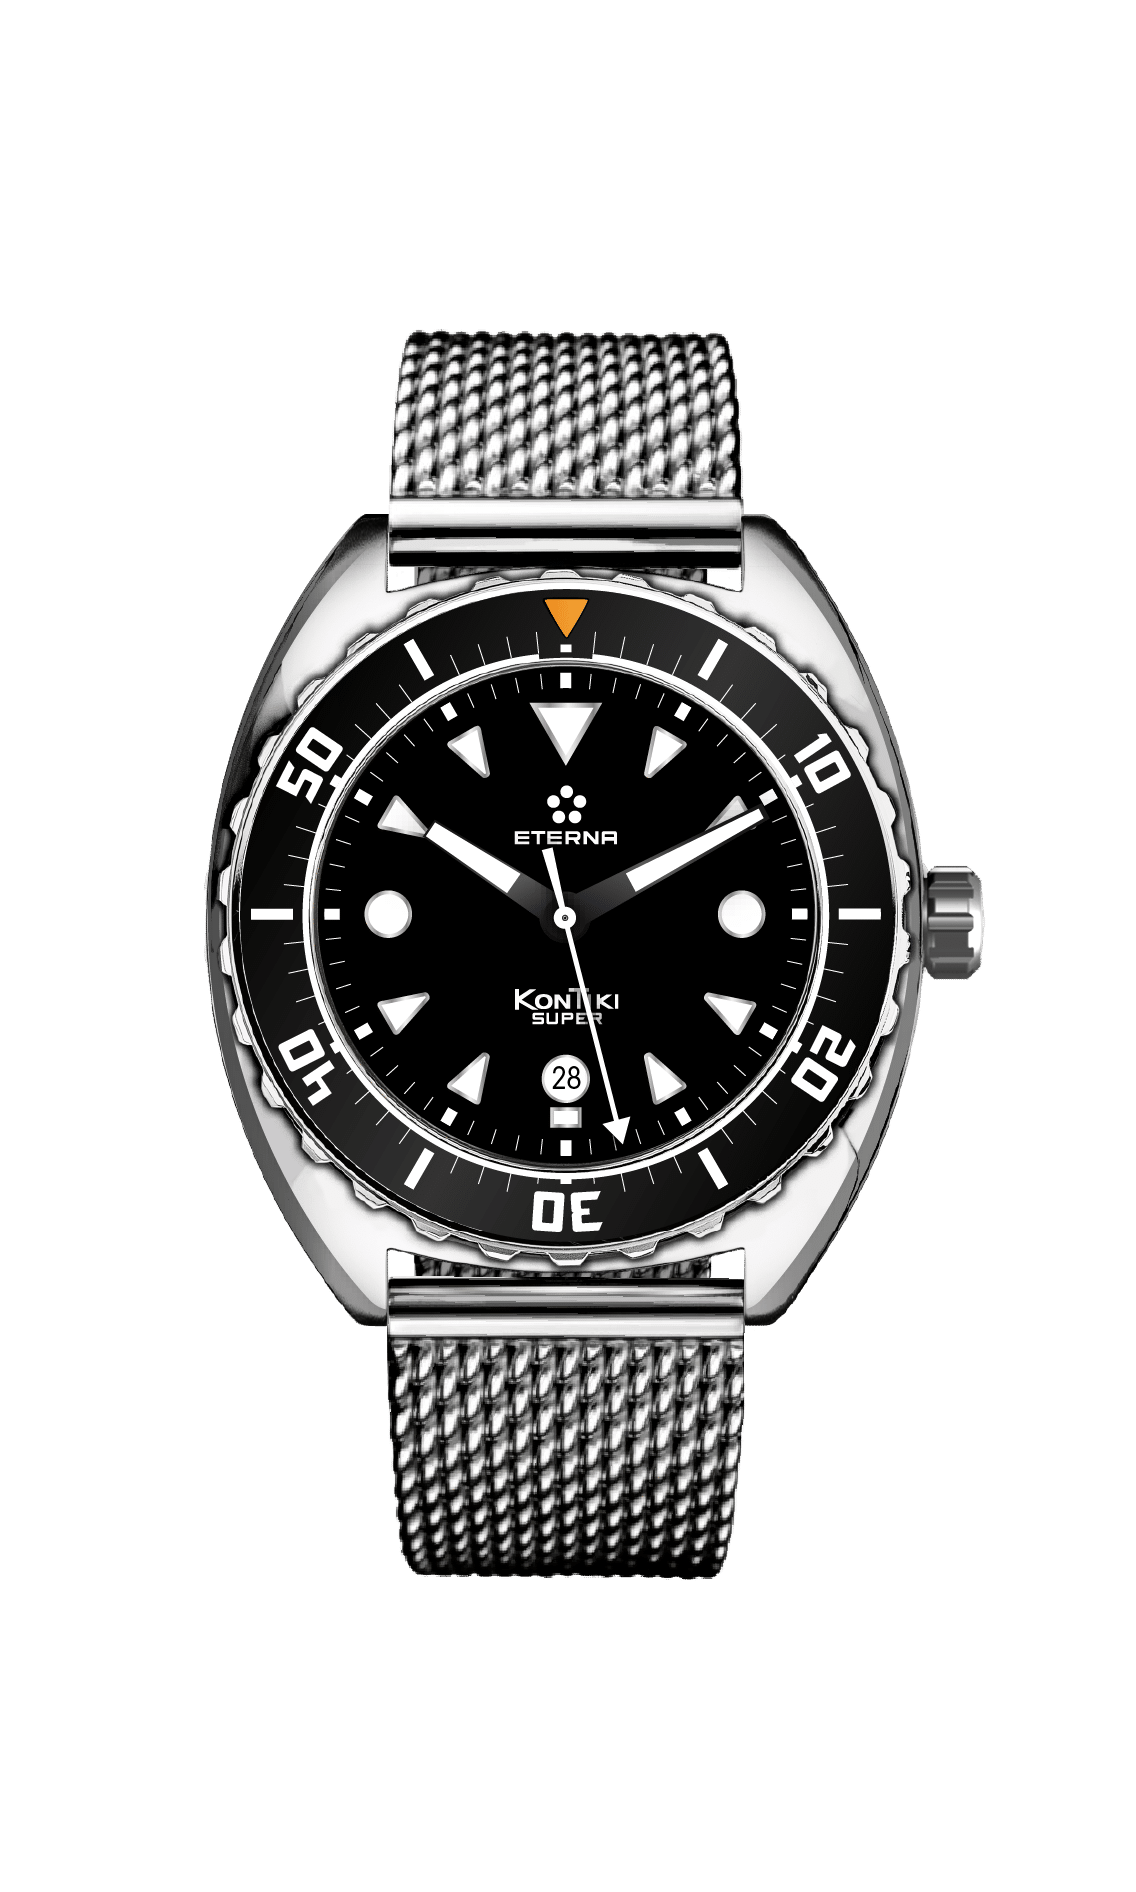 Eterna: Super KonTiki, Referenz 1273.41.40.1718